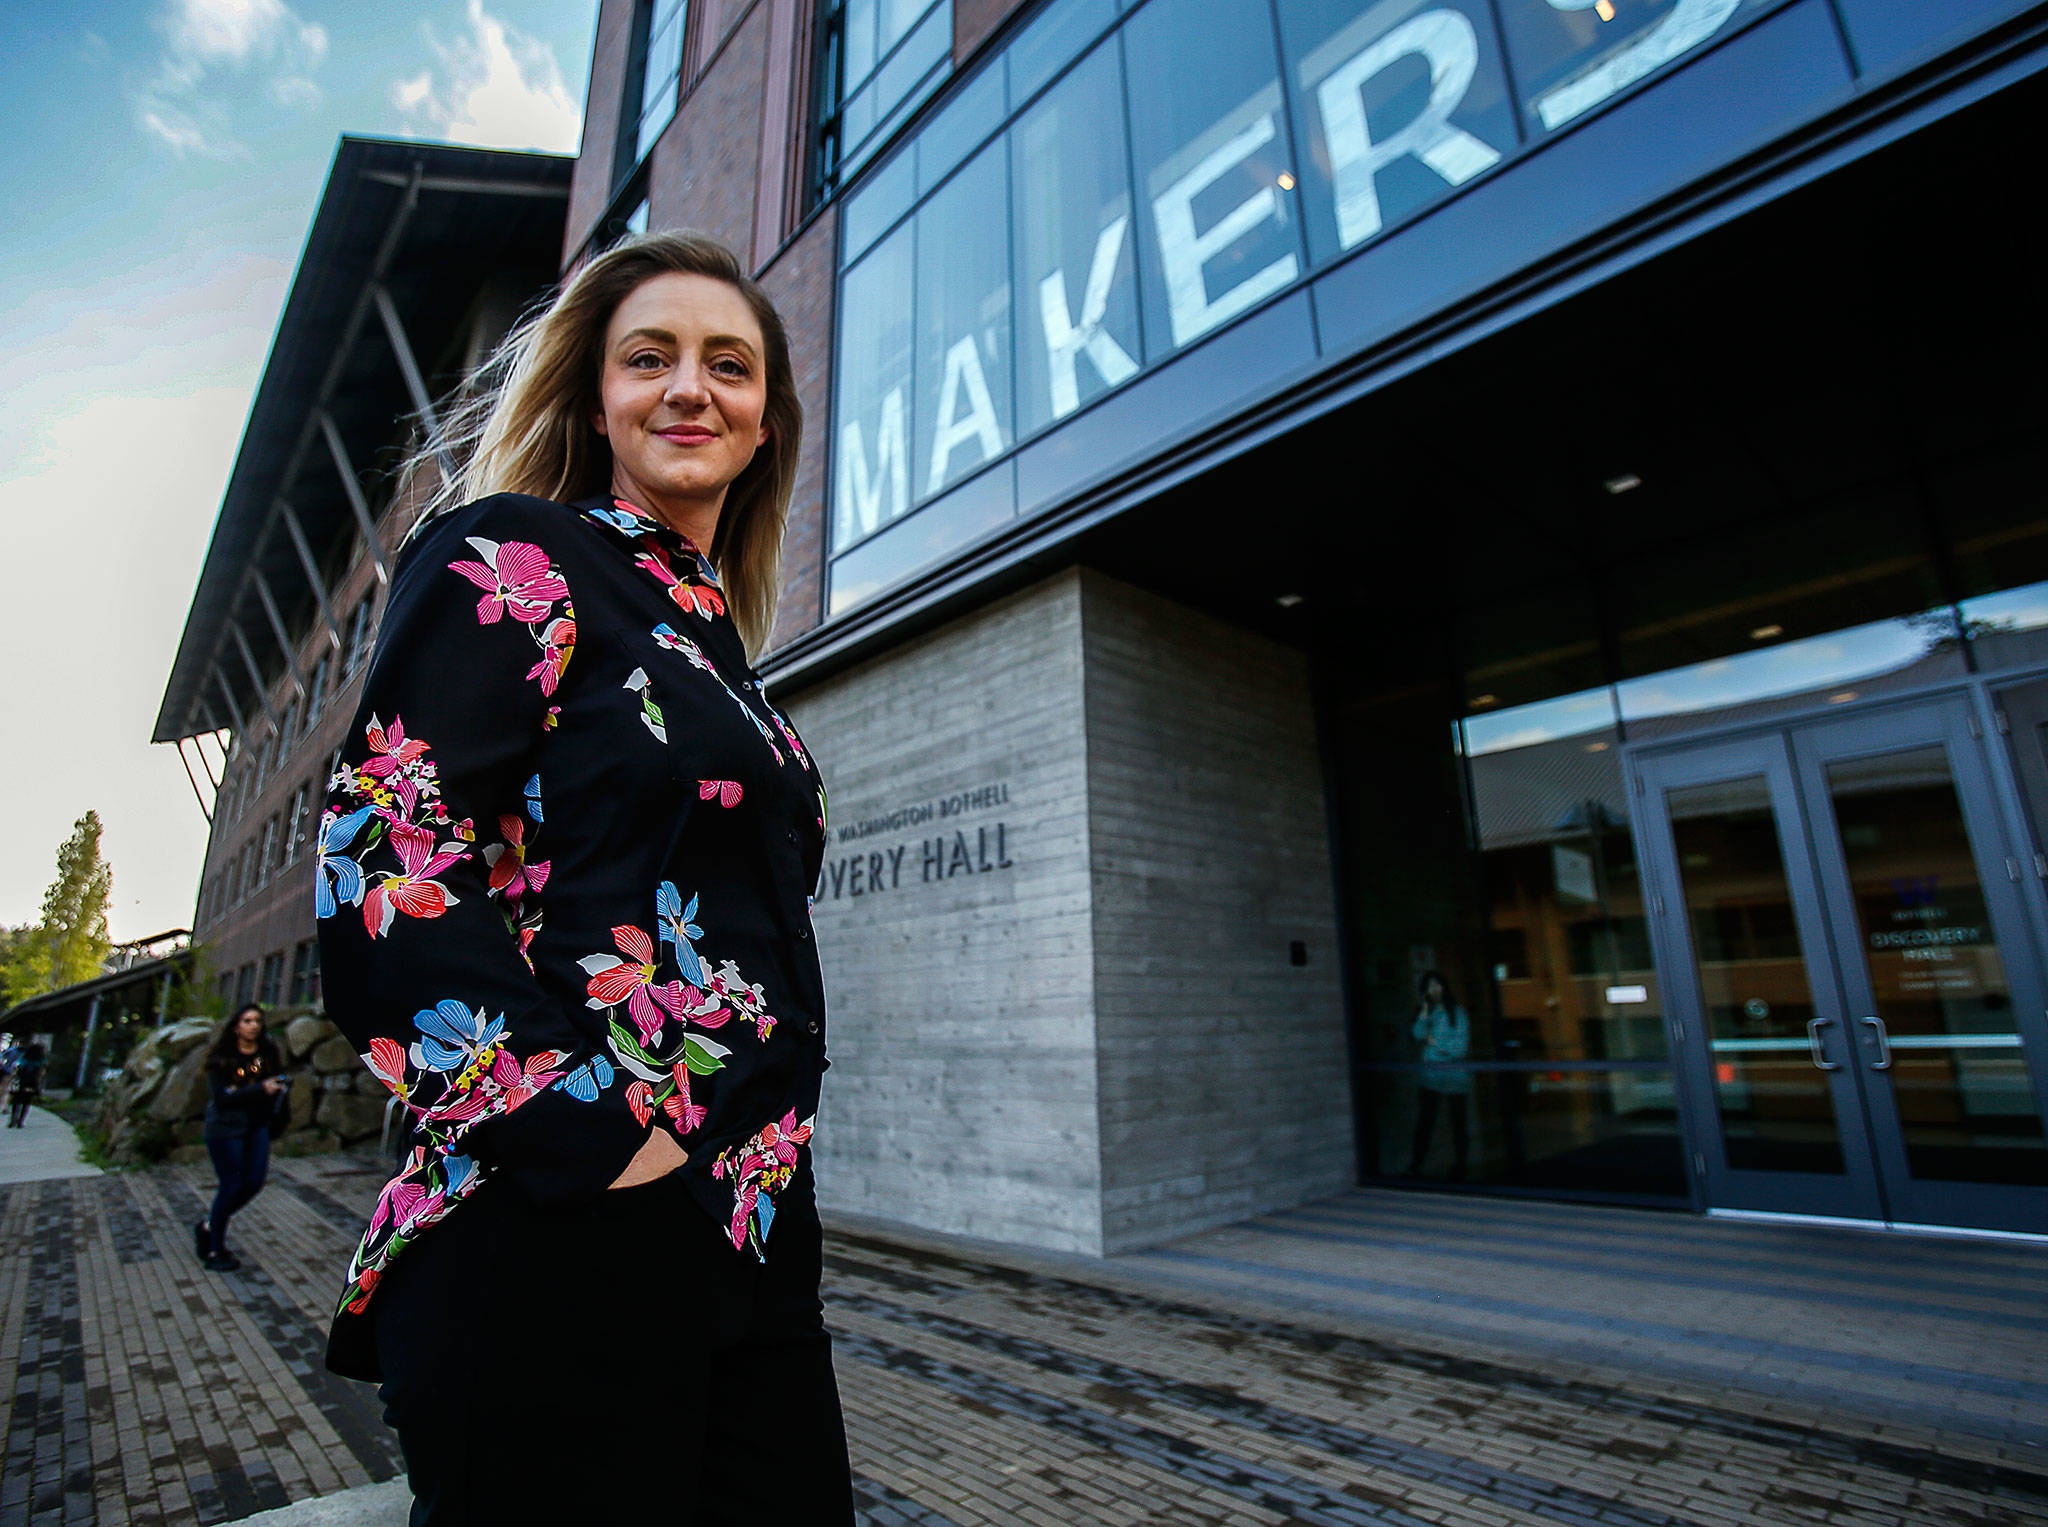 "<a href=""https://www.heraldnet.com/news/the-streets-to-law-school-uw-bothell-grad-one-of-husky-100/"" target=""_blank"">Crystal Nelson</a> is a UW Bothell grad who'll soon attend Seattle University School of Law. A recovering addict, she dropped out of school after eighth grade and spent 17 years on the streets. (Dan Bates / The Herald)"